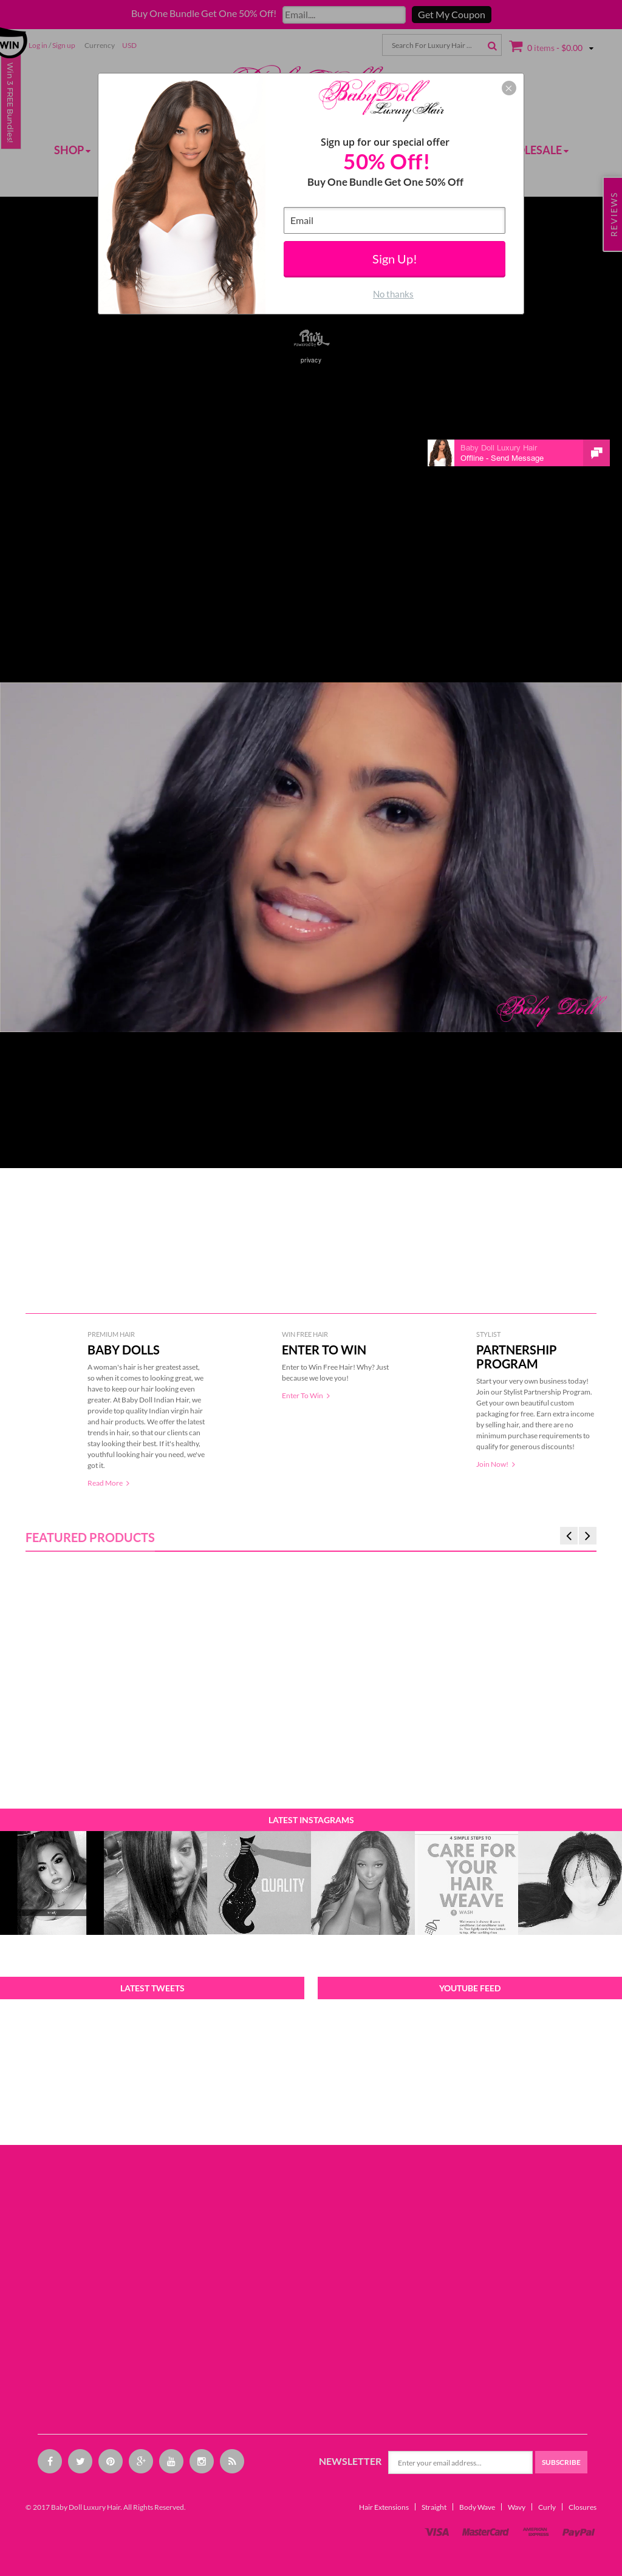 Baby Doll Luxury Hair Competitors Revenue And Employees Owler